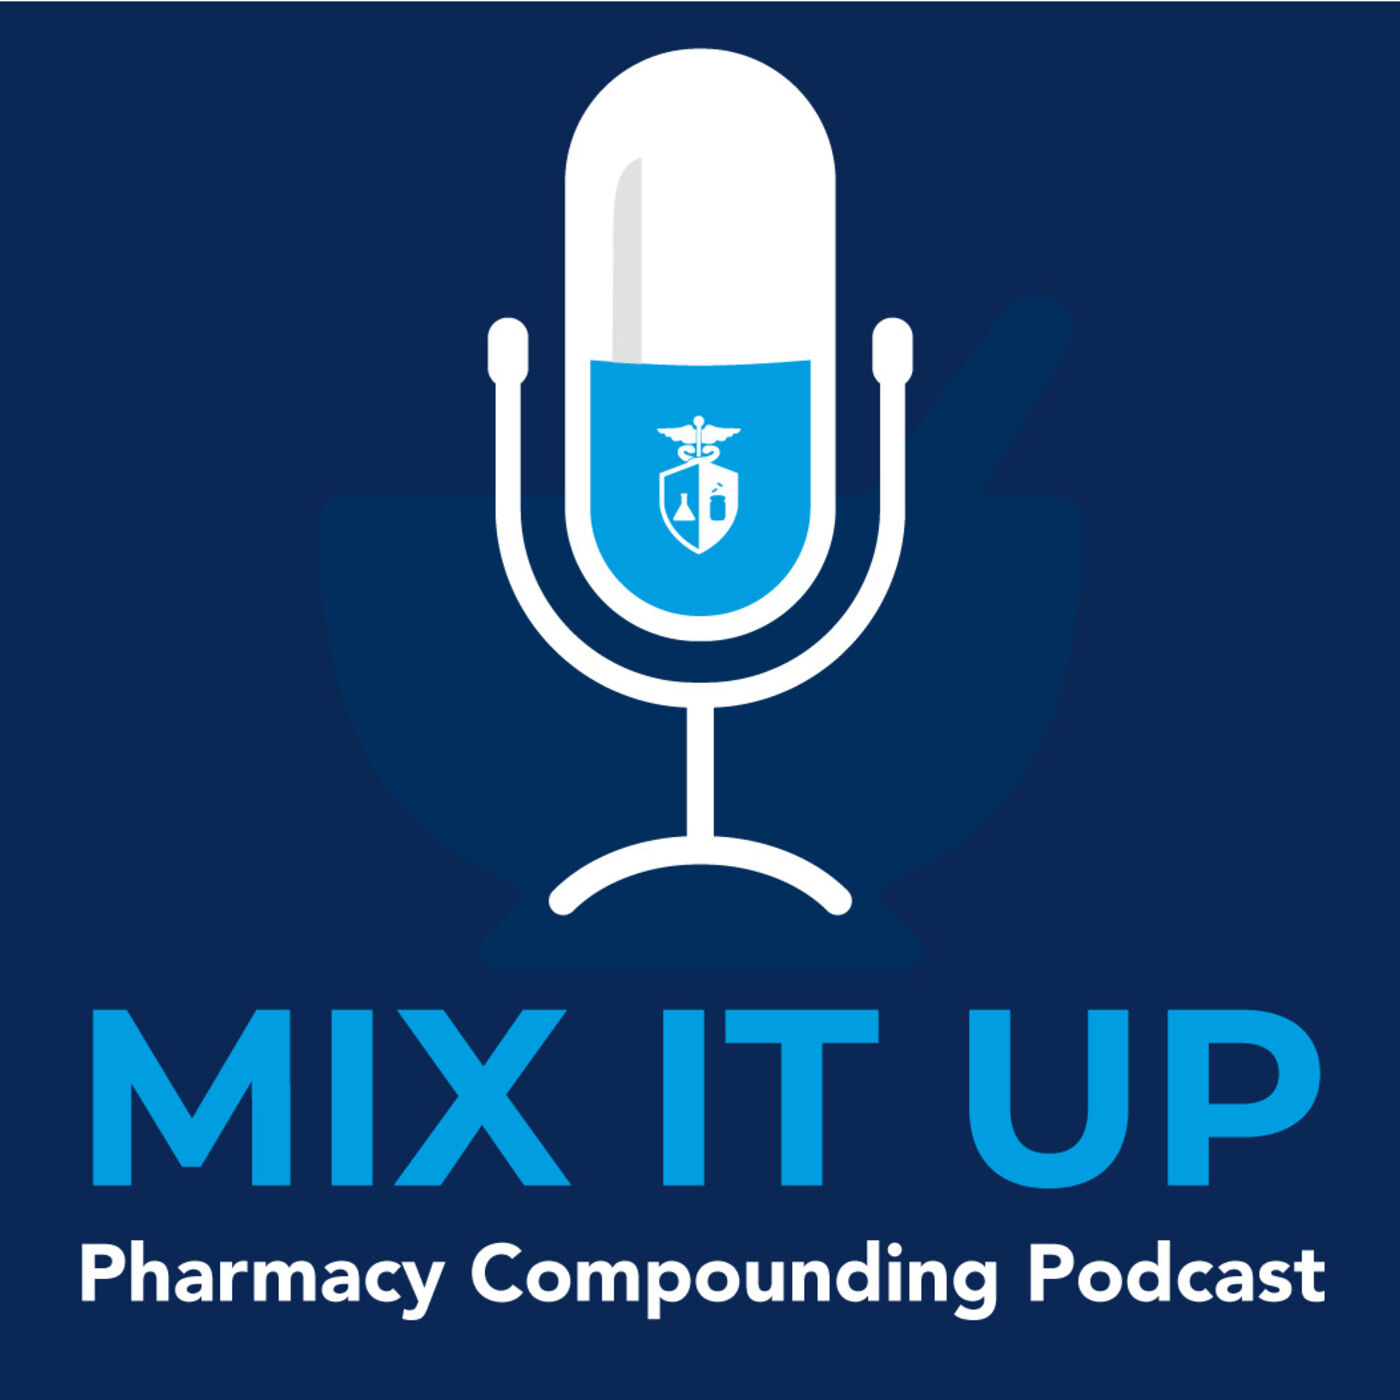 Episode 1.7 - Effective Communication Among Your Pharmacy Team: Interview with Rebecca Emch, PharmD